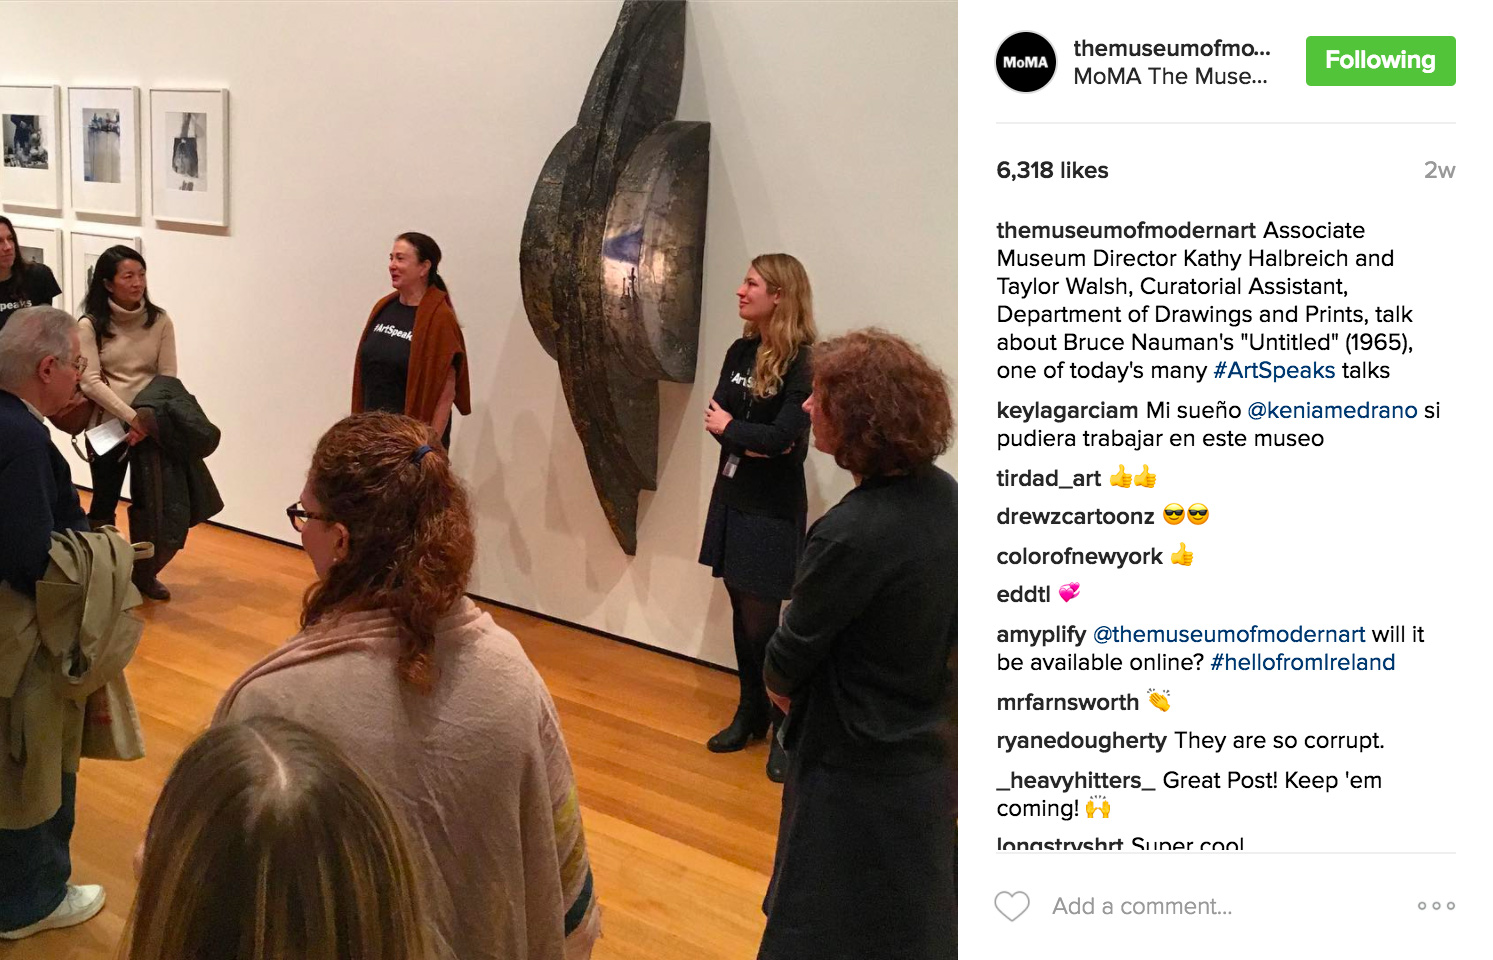 MoMA_art-speaks_1.jpg